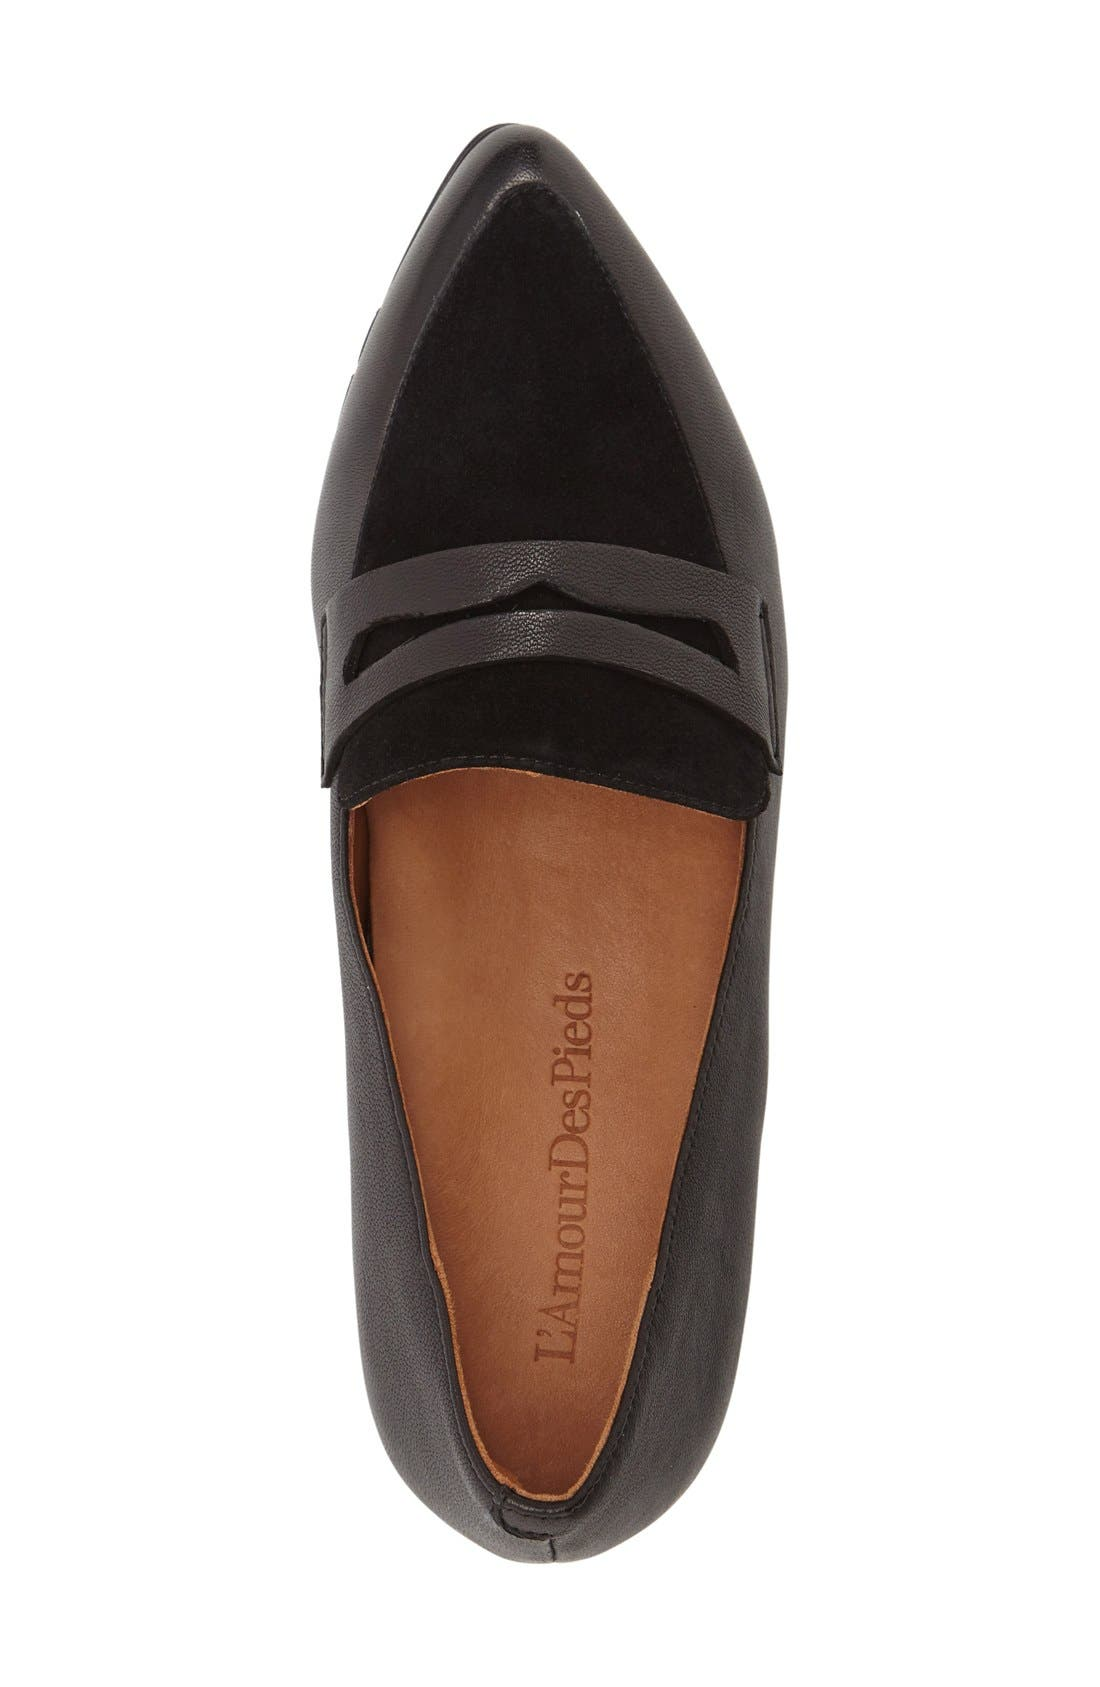 'Miamore' Pointy Toe Loafer,                             Alternate thumbnail 3, color,                             001